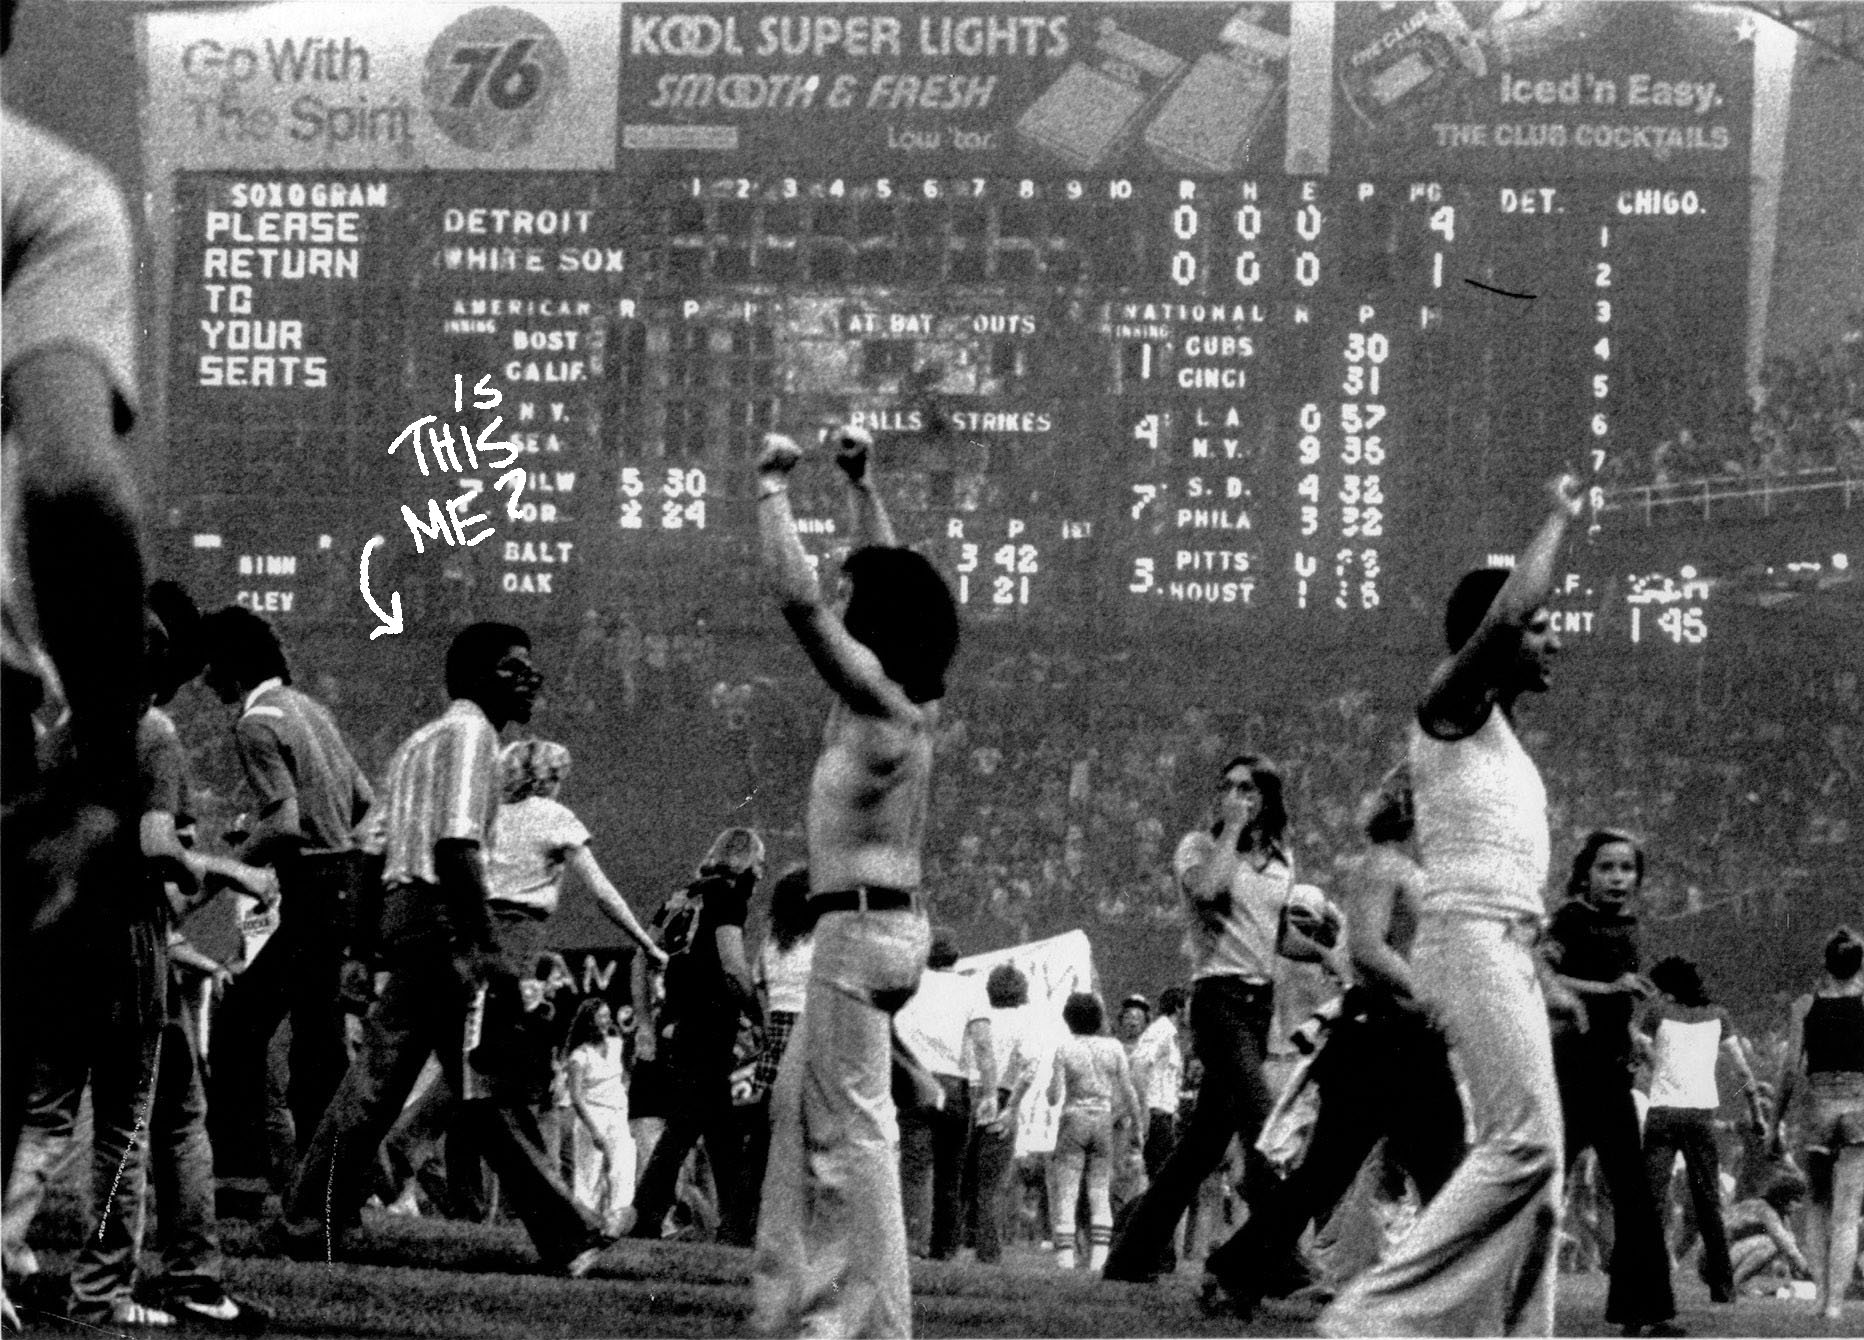 7/13/1979 -- The White Sox scoreboard message goes unheeded as thousands of spectators engulf the field during an anti-disco demonstration that caused the second game of a double-header to be called off. Detroit won the opener 4-1. UPI photo by Hank DeGeorge.(demolition,Comiskey park,baseball pro,Chicago)